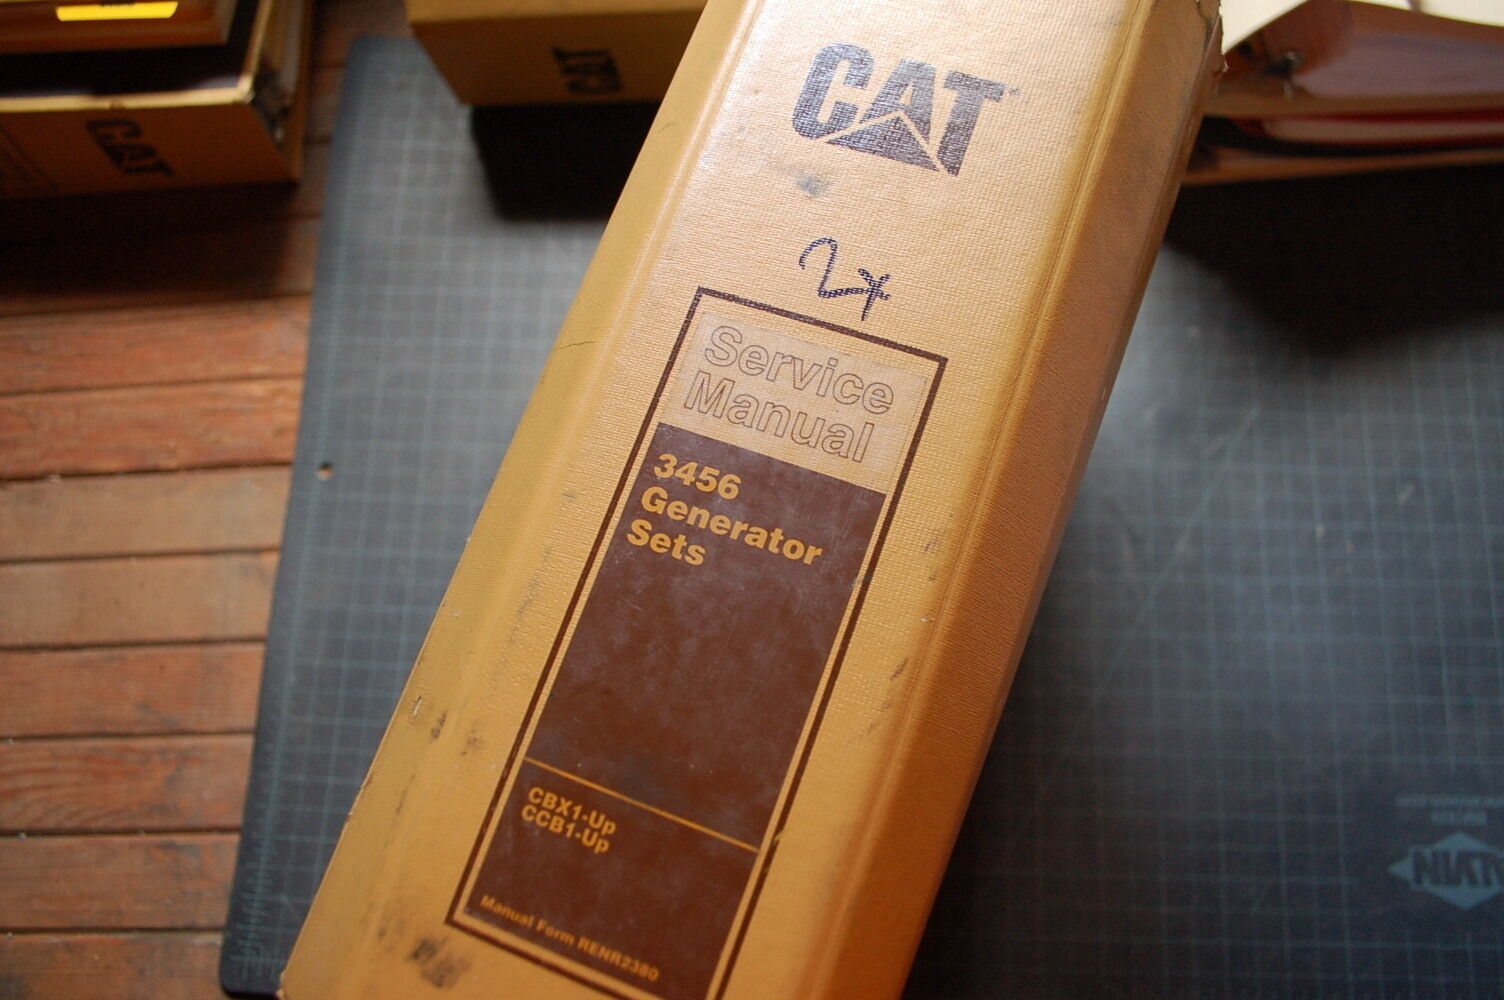 Cat Caterpillar 3456 Generator Set Engine Service Manual Repair C18 Wiring Diagram 1 Of 8only 2 Available Overhaul Owner